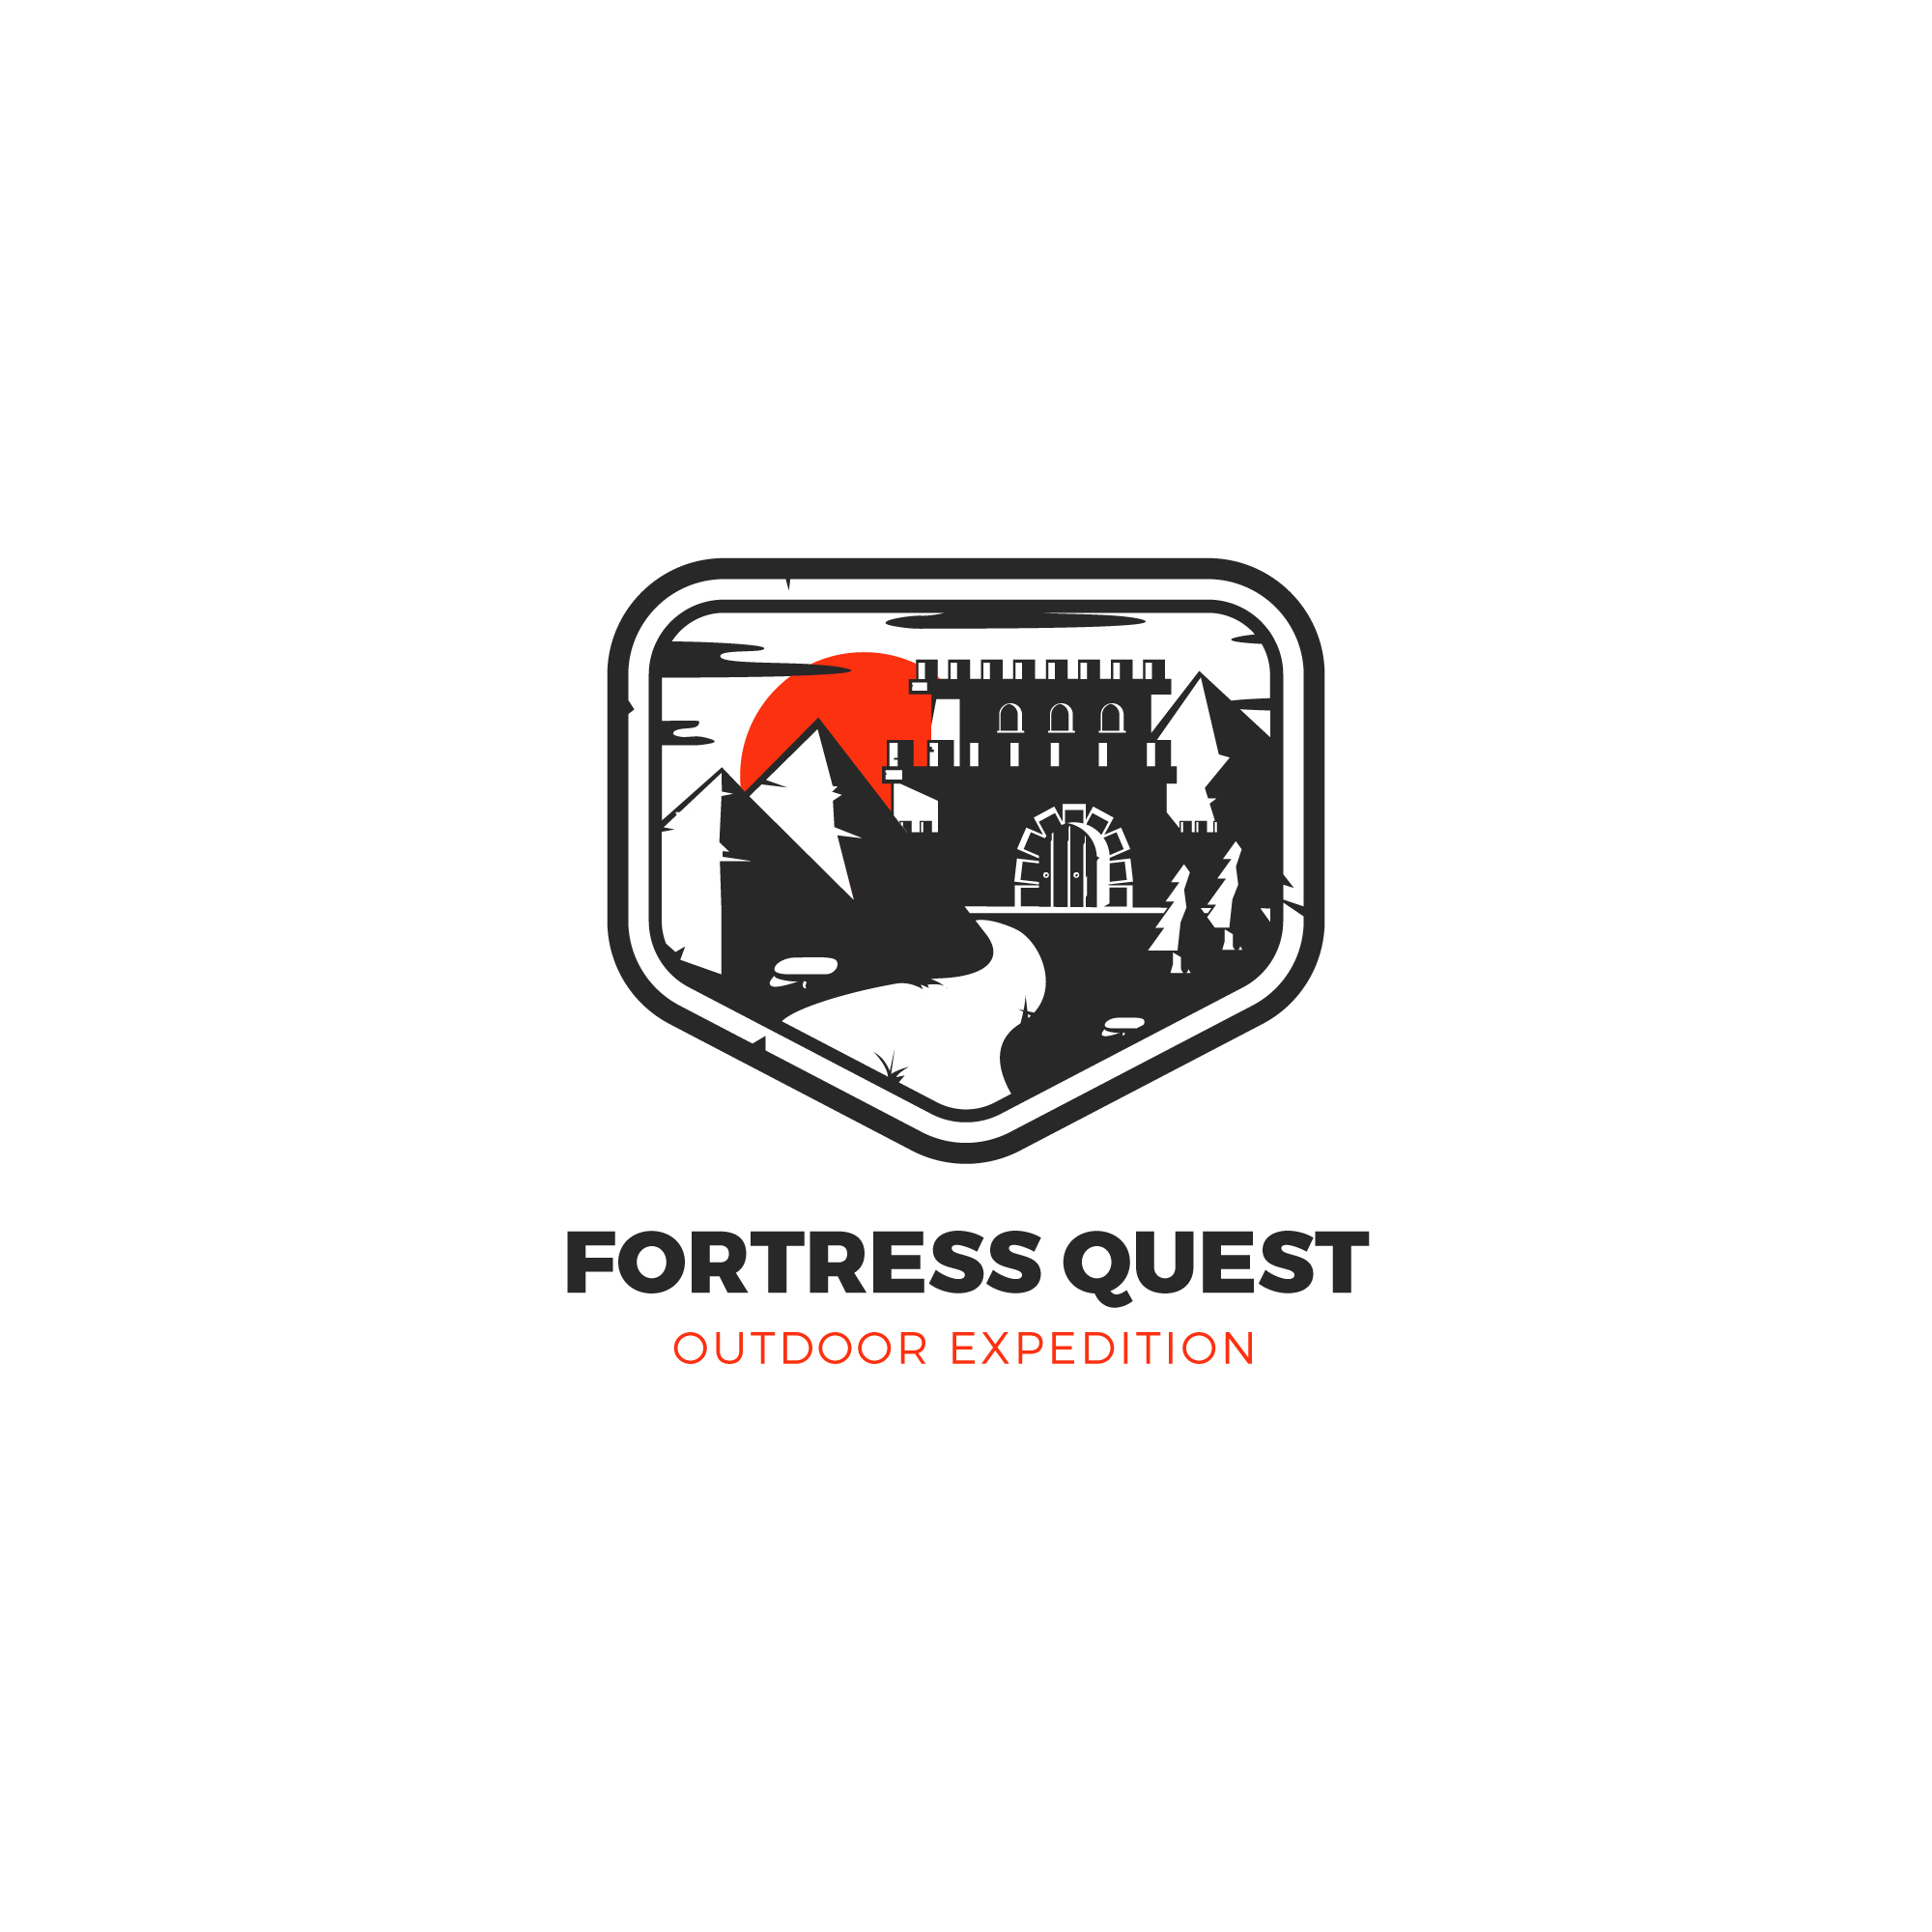 Fortress logo design